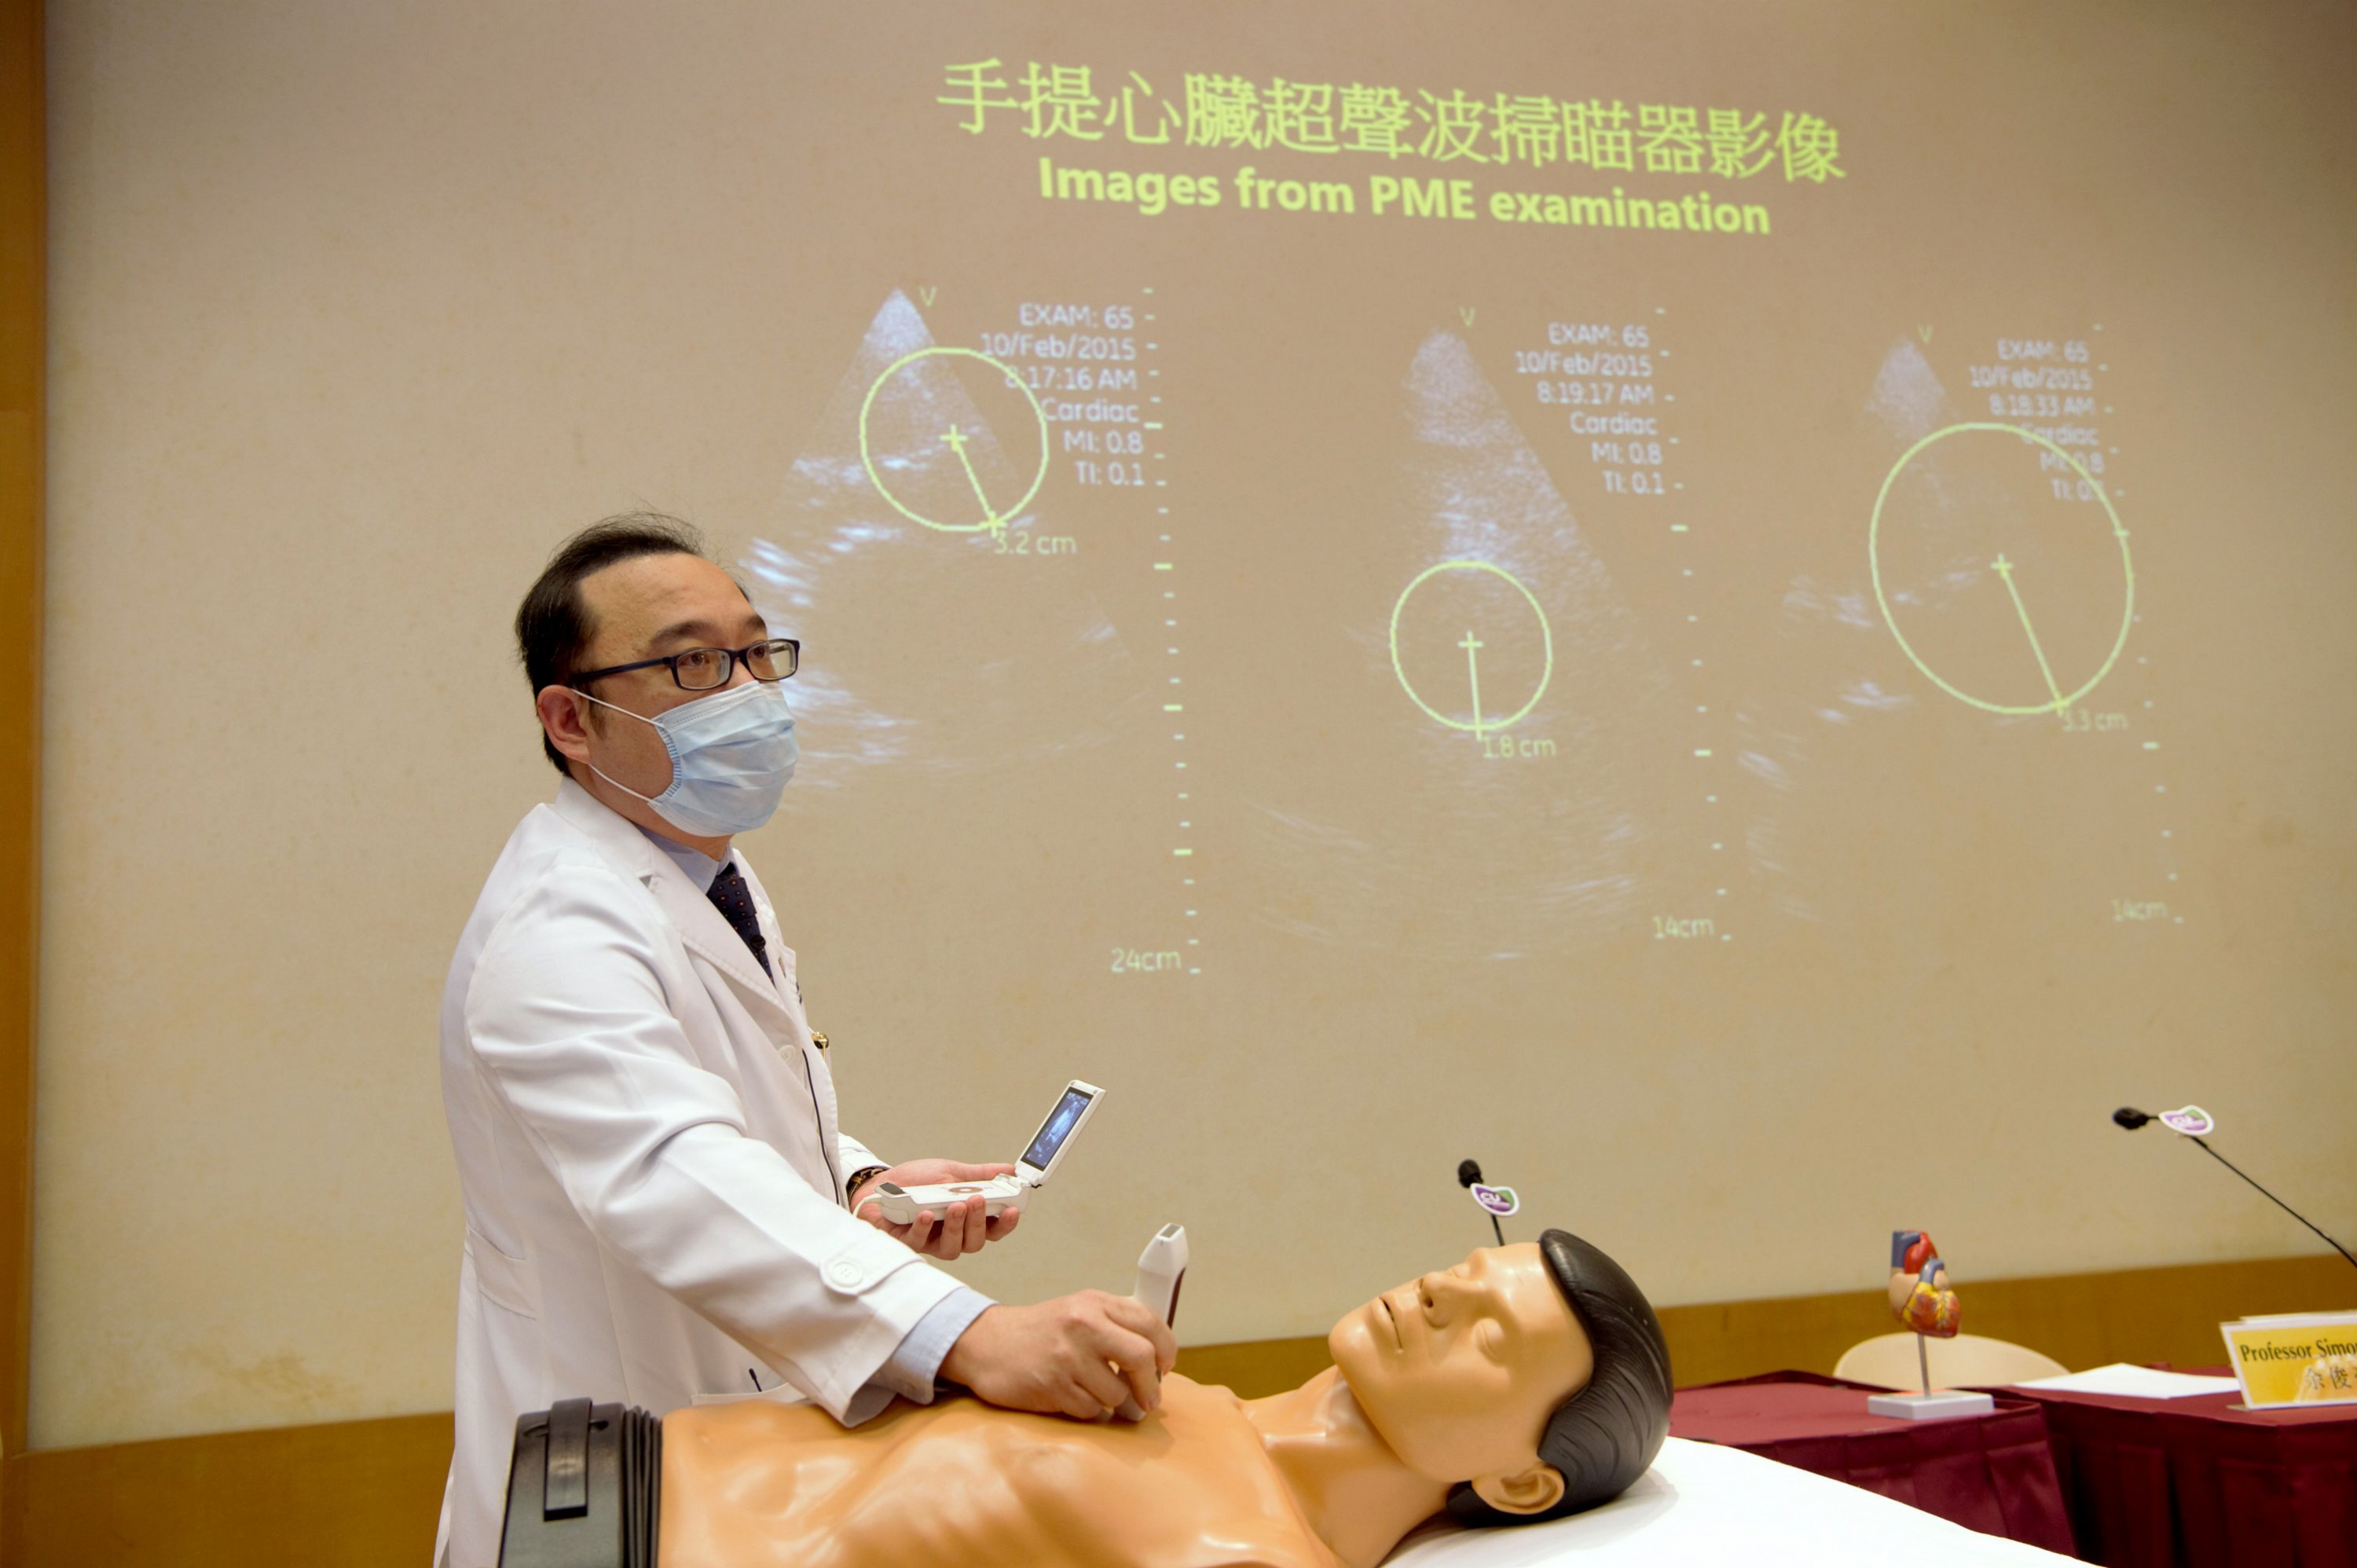 Professor Alex Pui Wai LEE says the PME device is as handy as doctors' stethoscope, meaning that they can carry out scanning for patients anytime, anywhere.